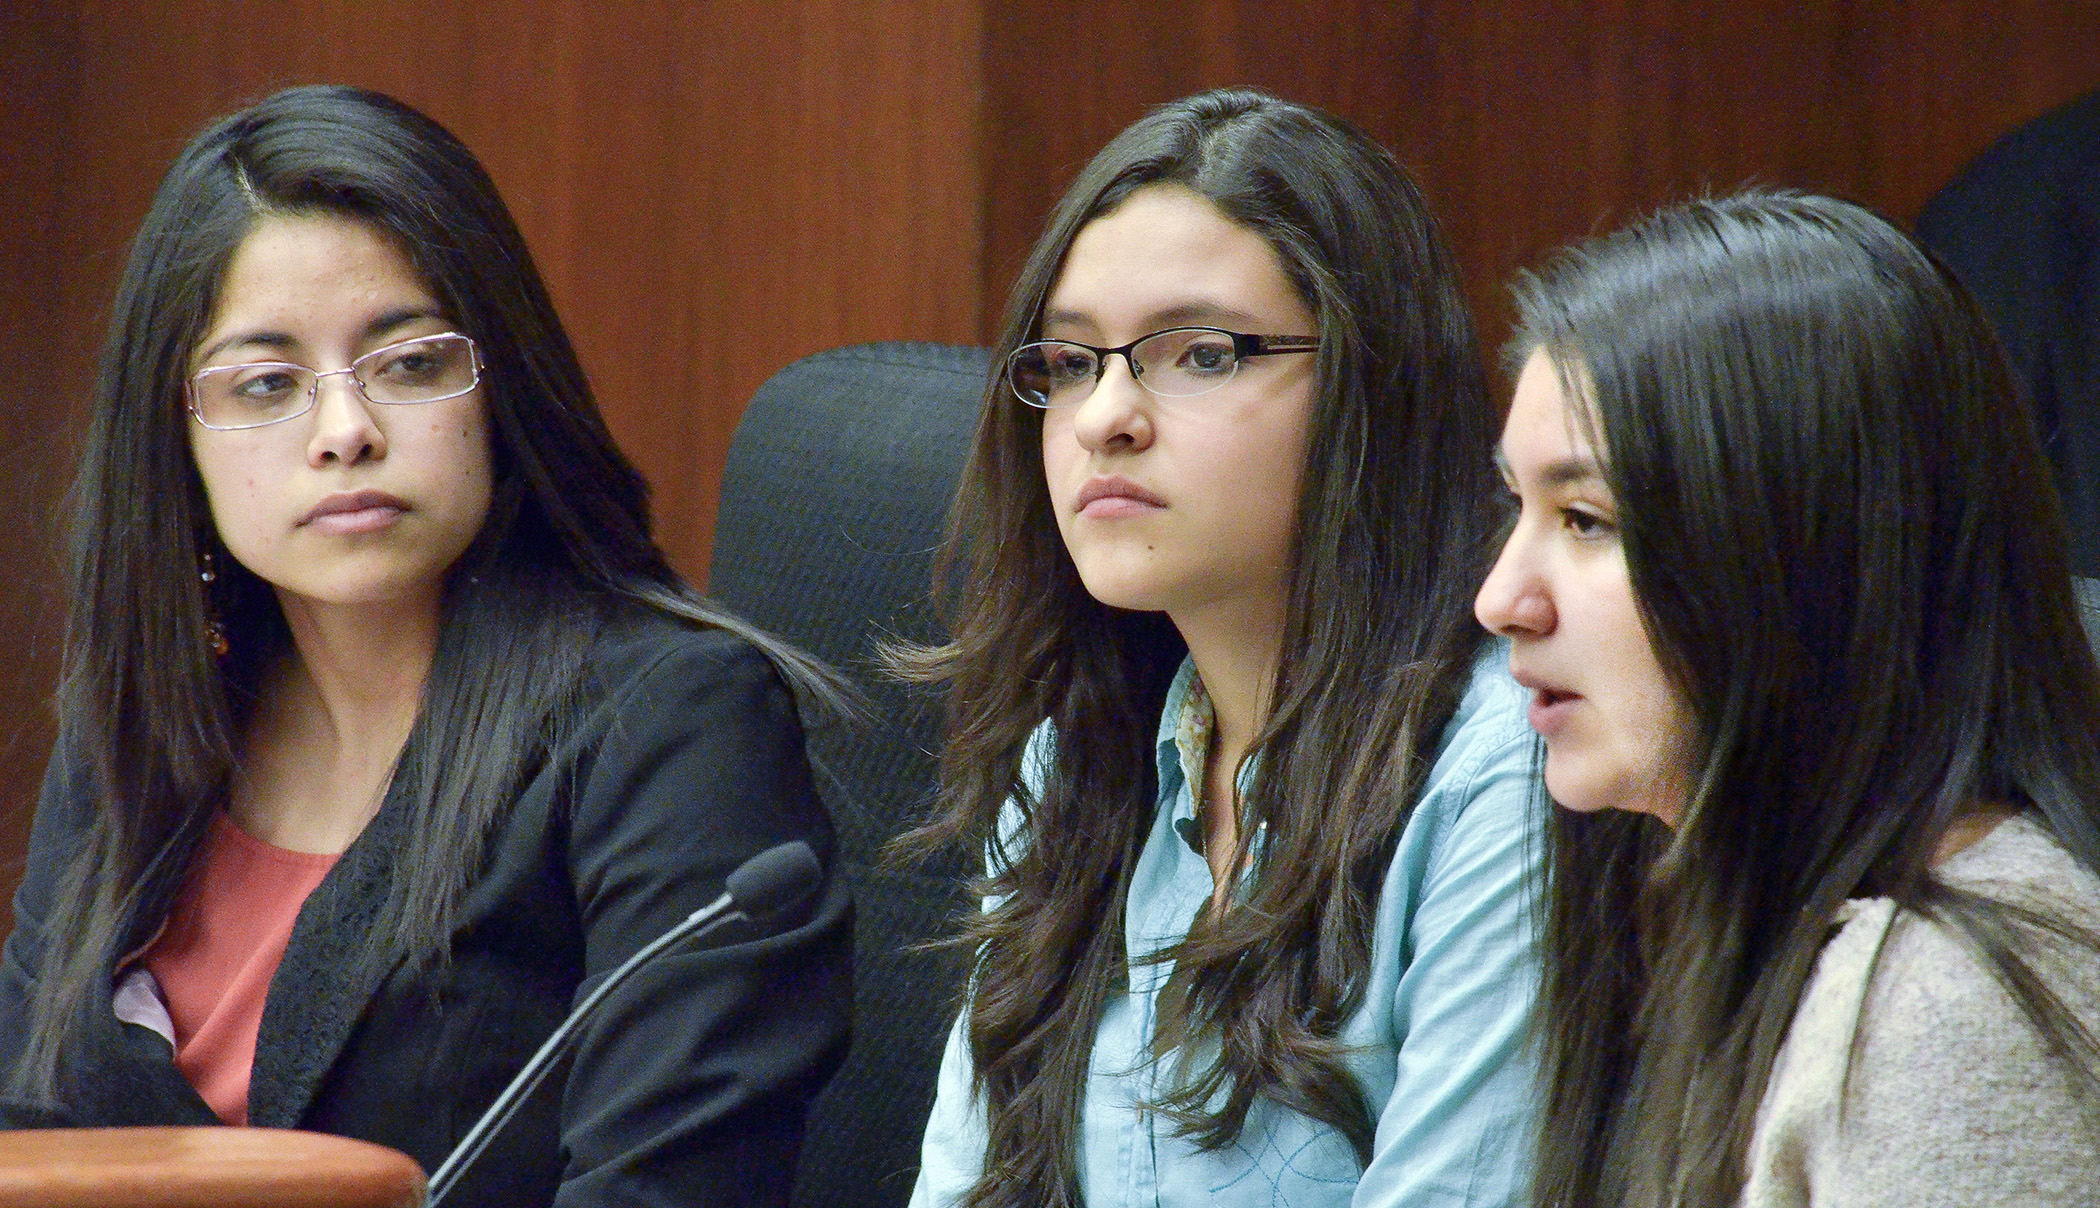 Karem Salas, from left, Thalia Estrada and Joycelin Hernandez testify before the House Higher Education Finance and Policy Committee April 3 in support of a bill that would provide unlawful immigrants treatment with respect to financial aid and tuition at public postsecondary institutions. (Photo by Andrew VonBank)